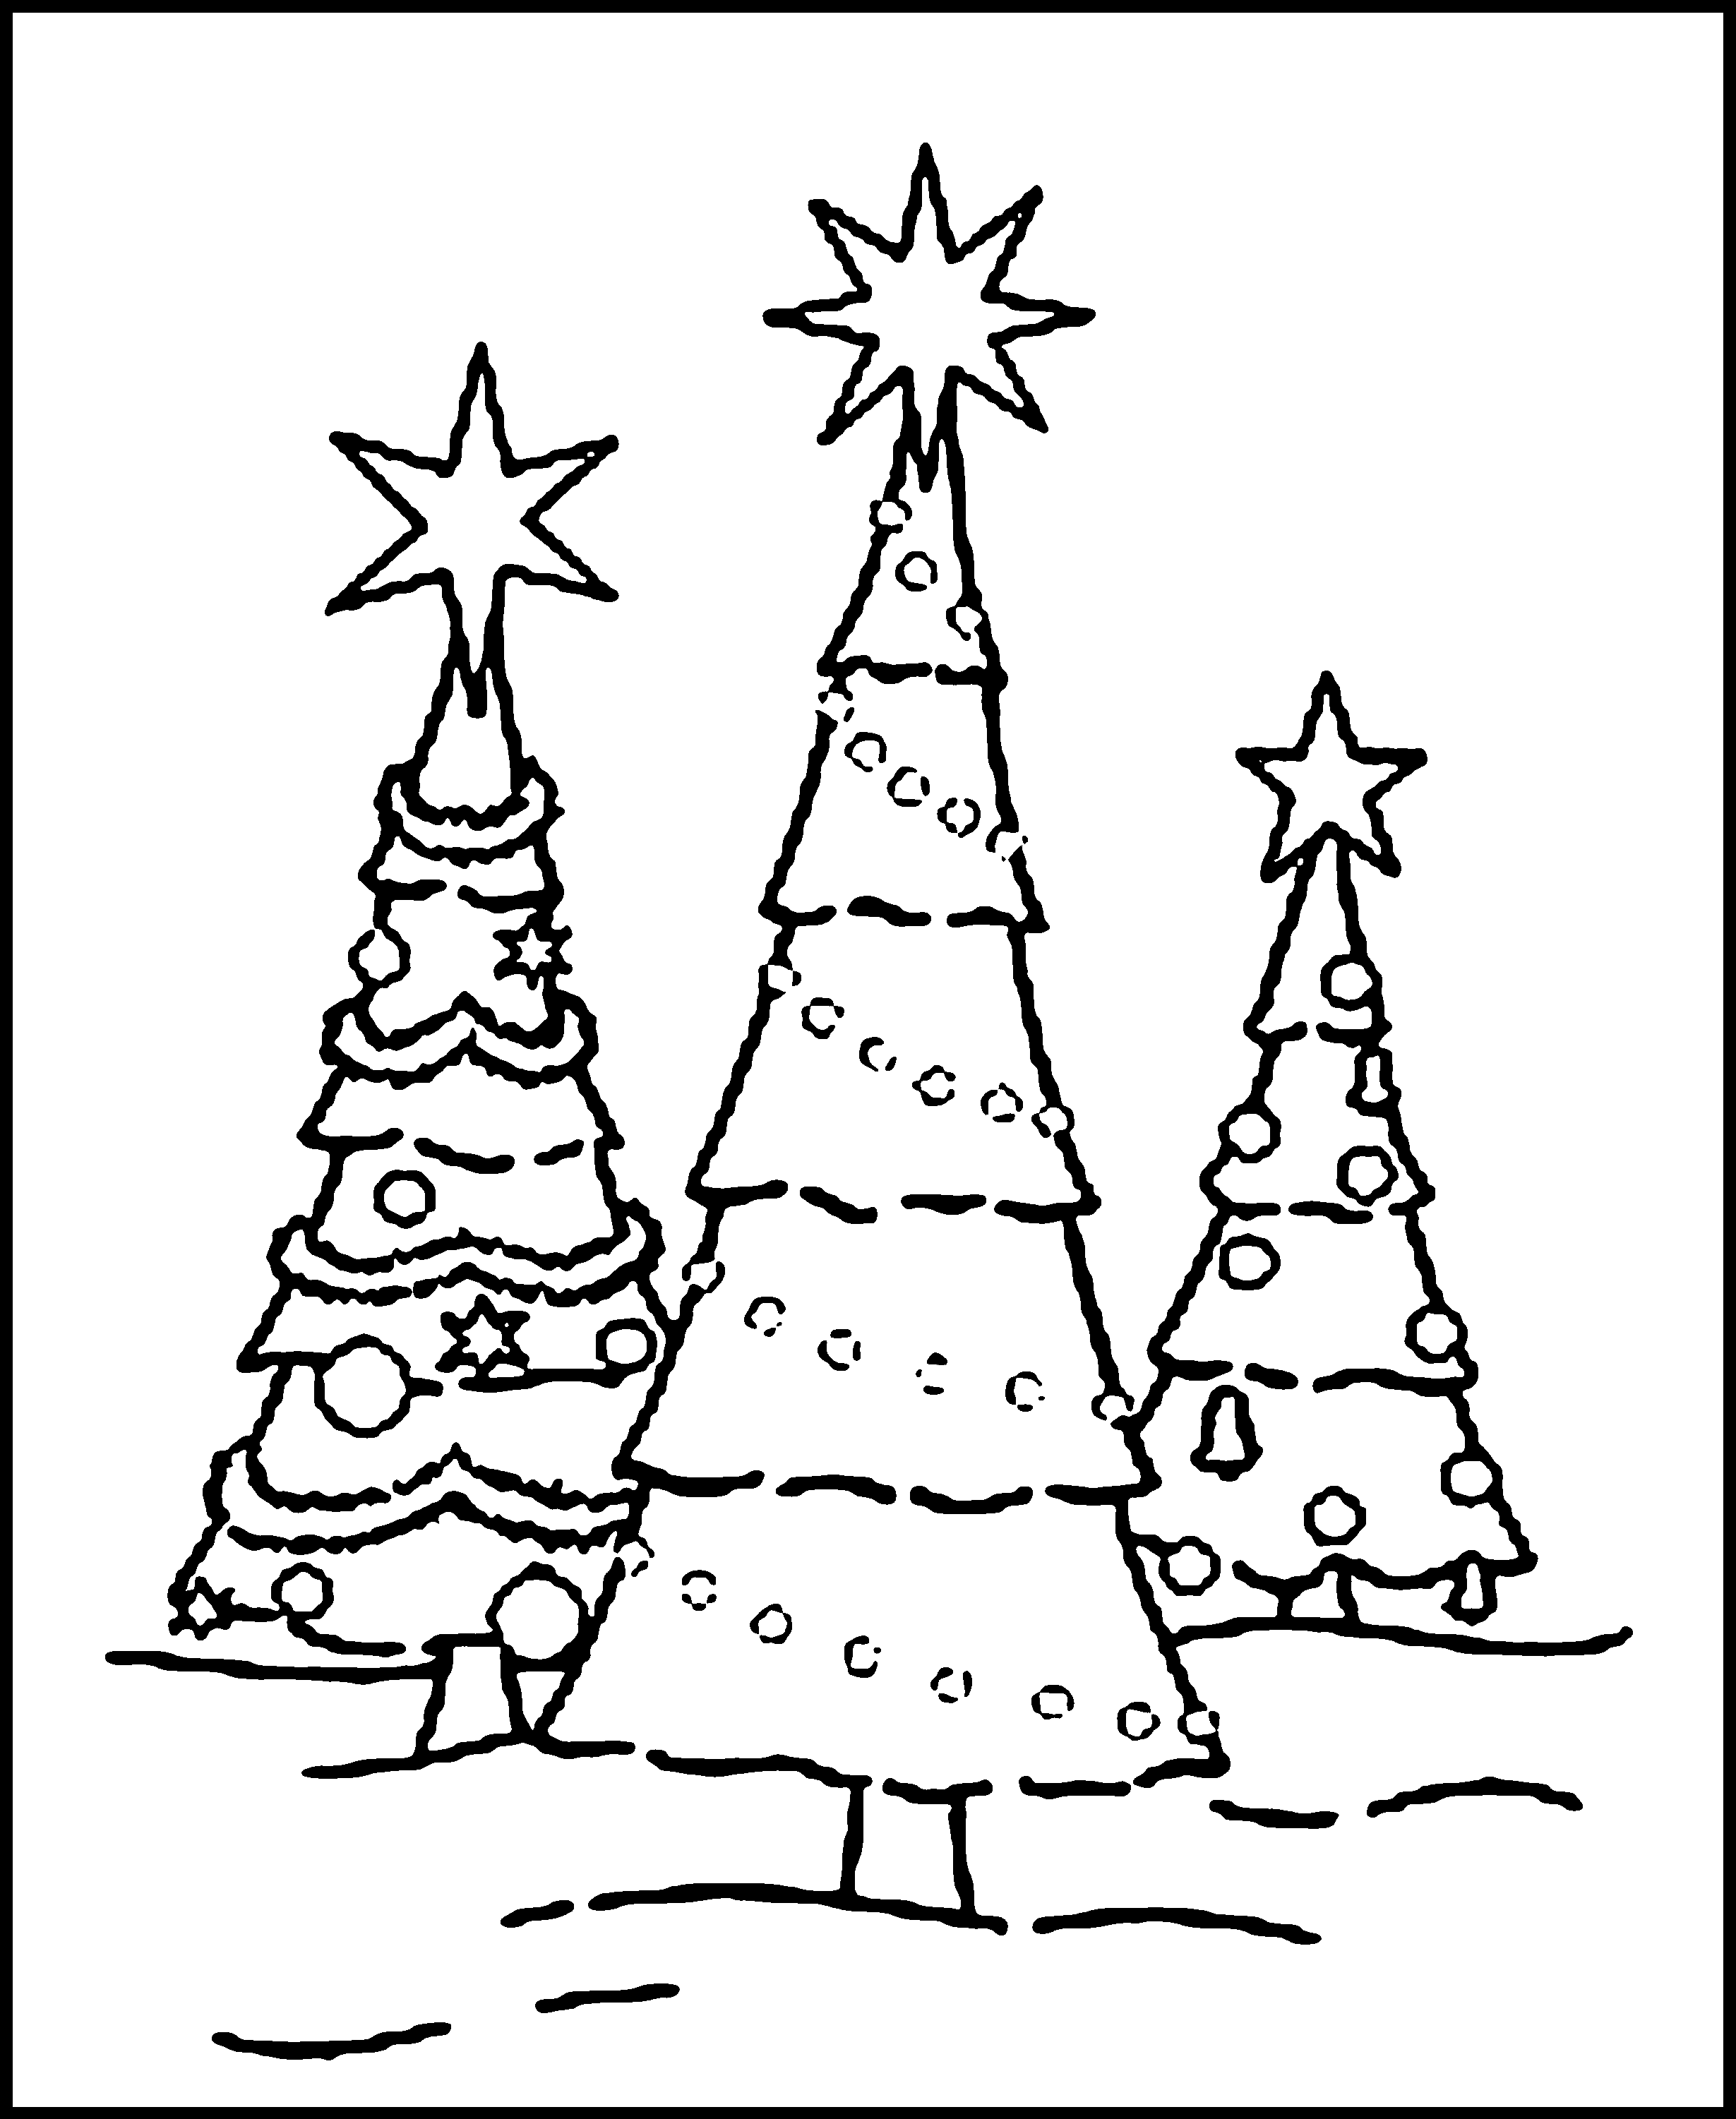 christmas coloring pages to print free free printable christmas tree coloring pages for kids coloring print to christmas free pages